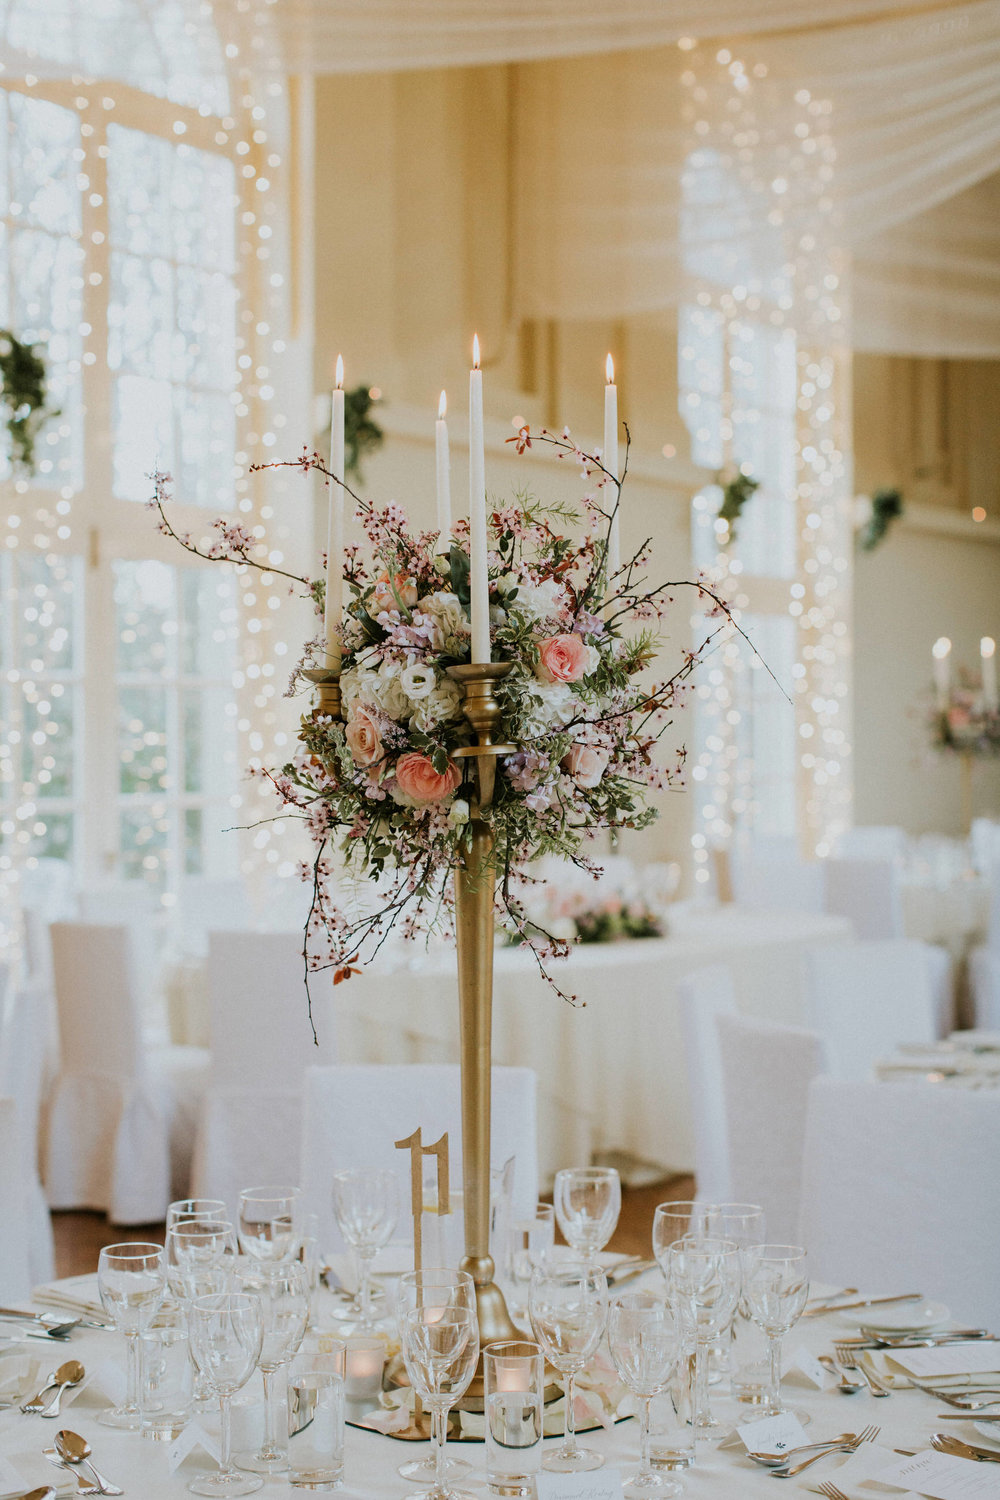 Kilshane House wedding